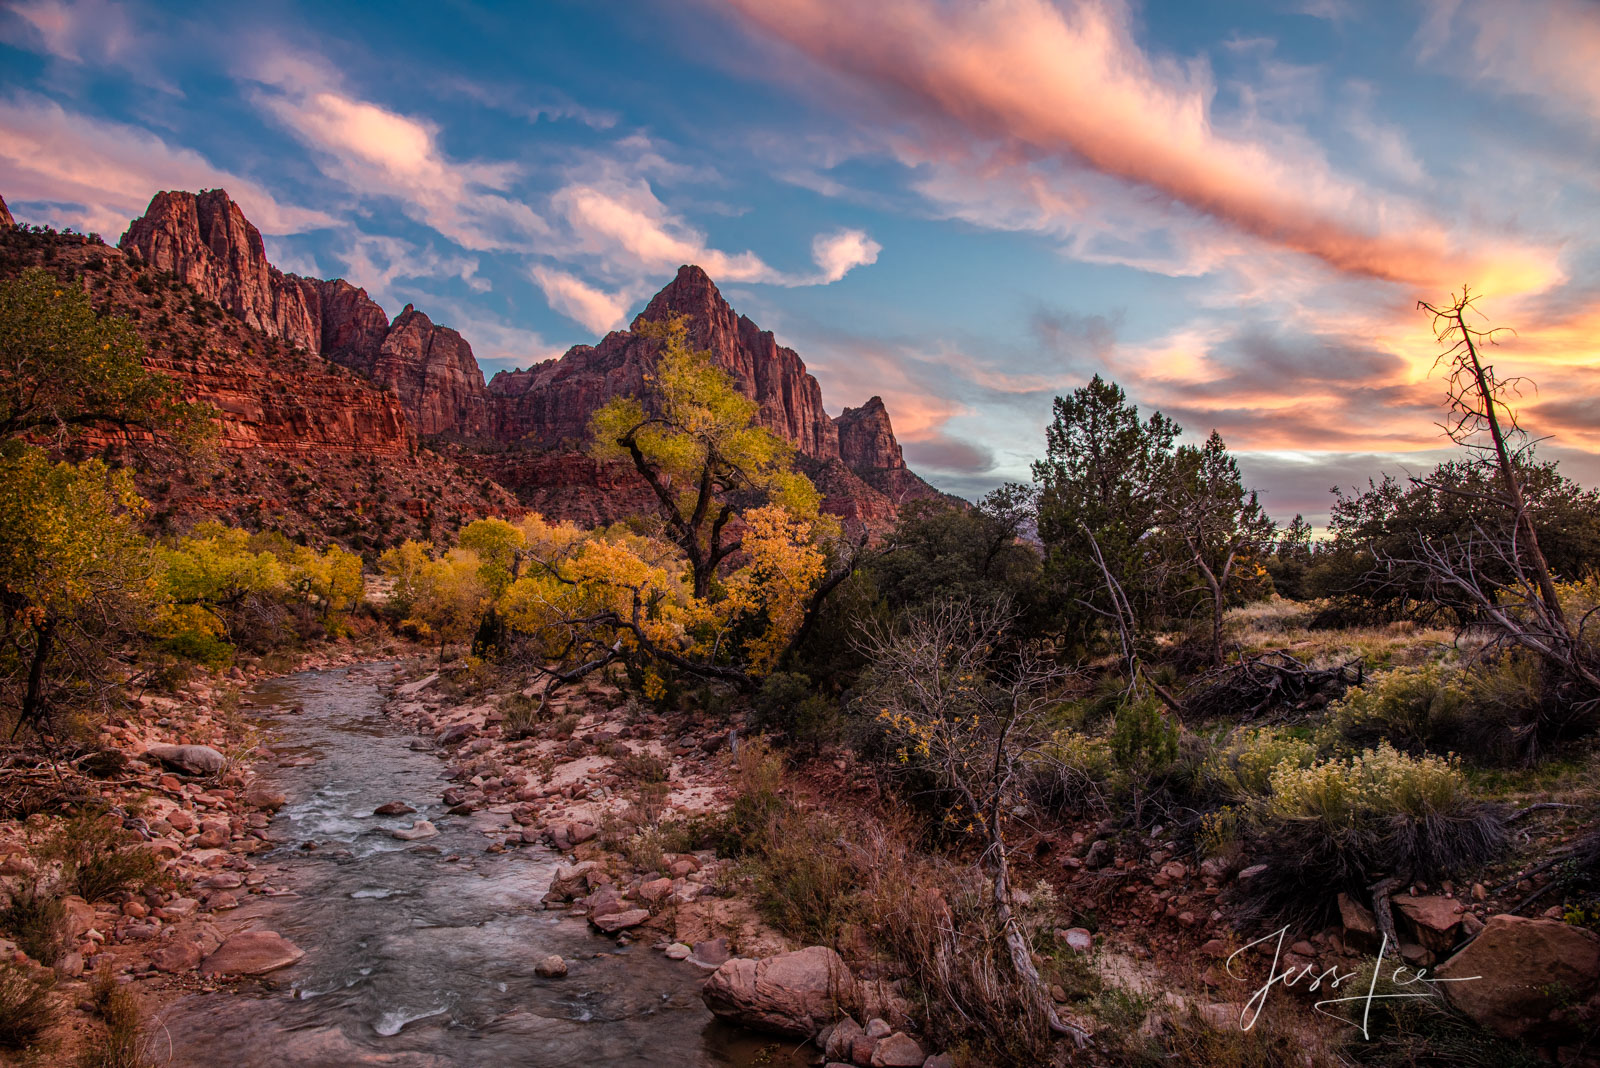 Autumn Evening over the Virgin River at Zion in the the American Southwest.